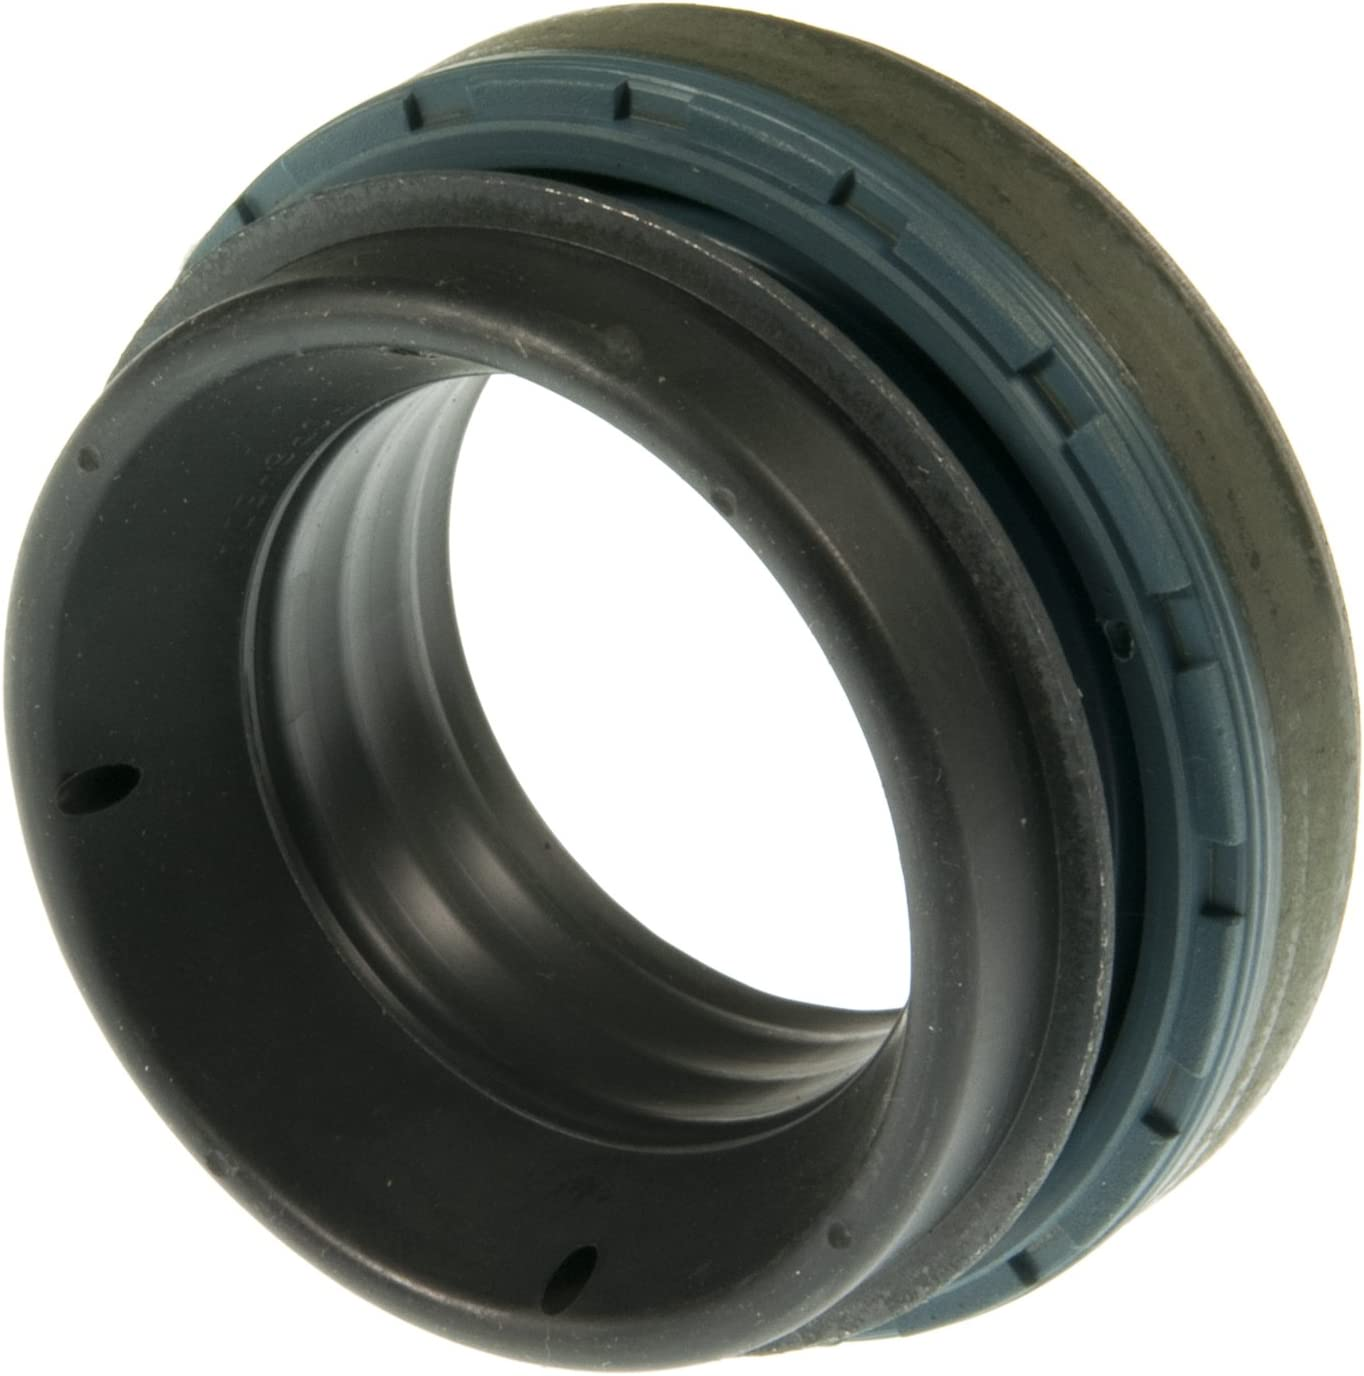 National 710492 Axle New arrival Seal Shaft Max 43% OFF